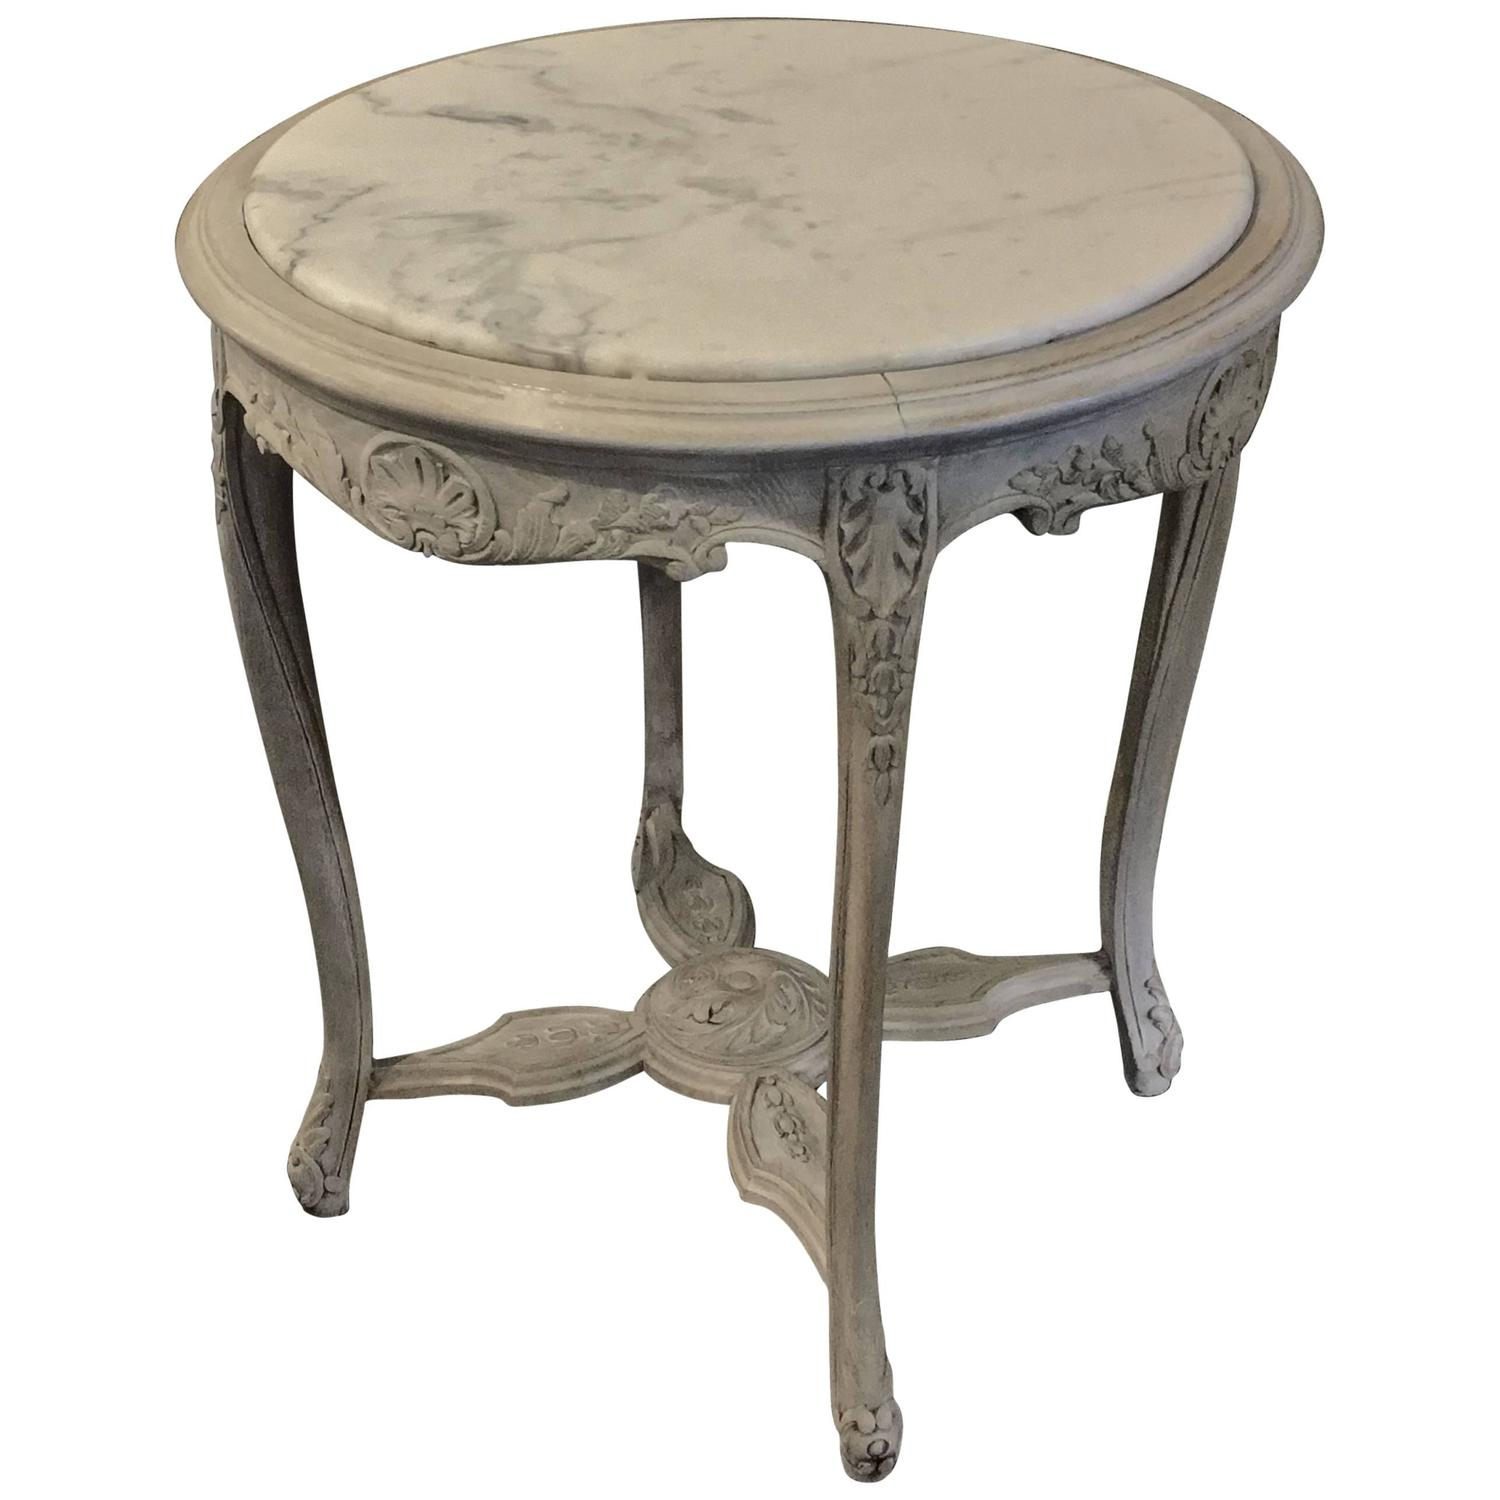 Antique french painted carrera marble top table at 1stdibs for Table carrera